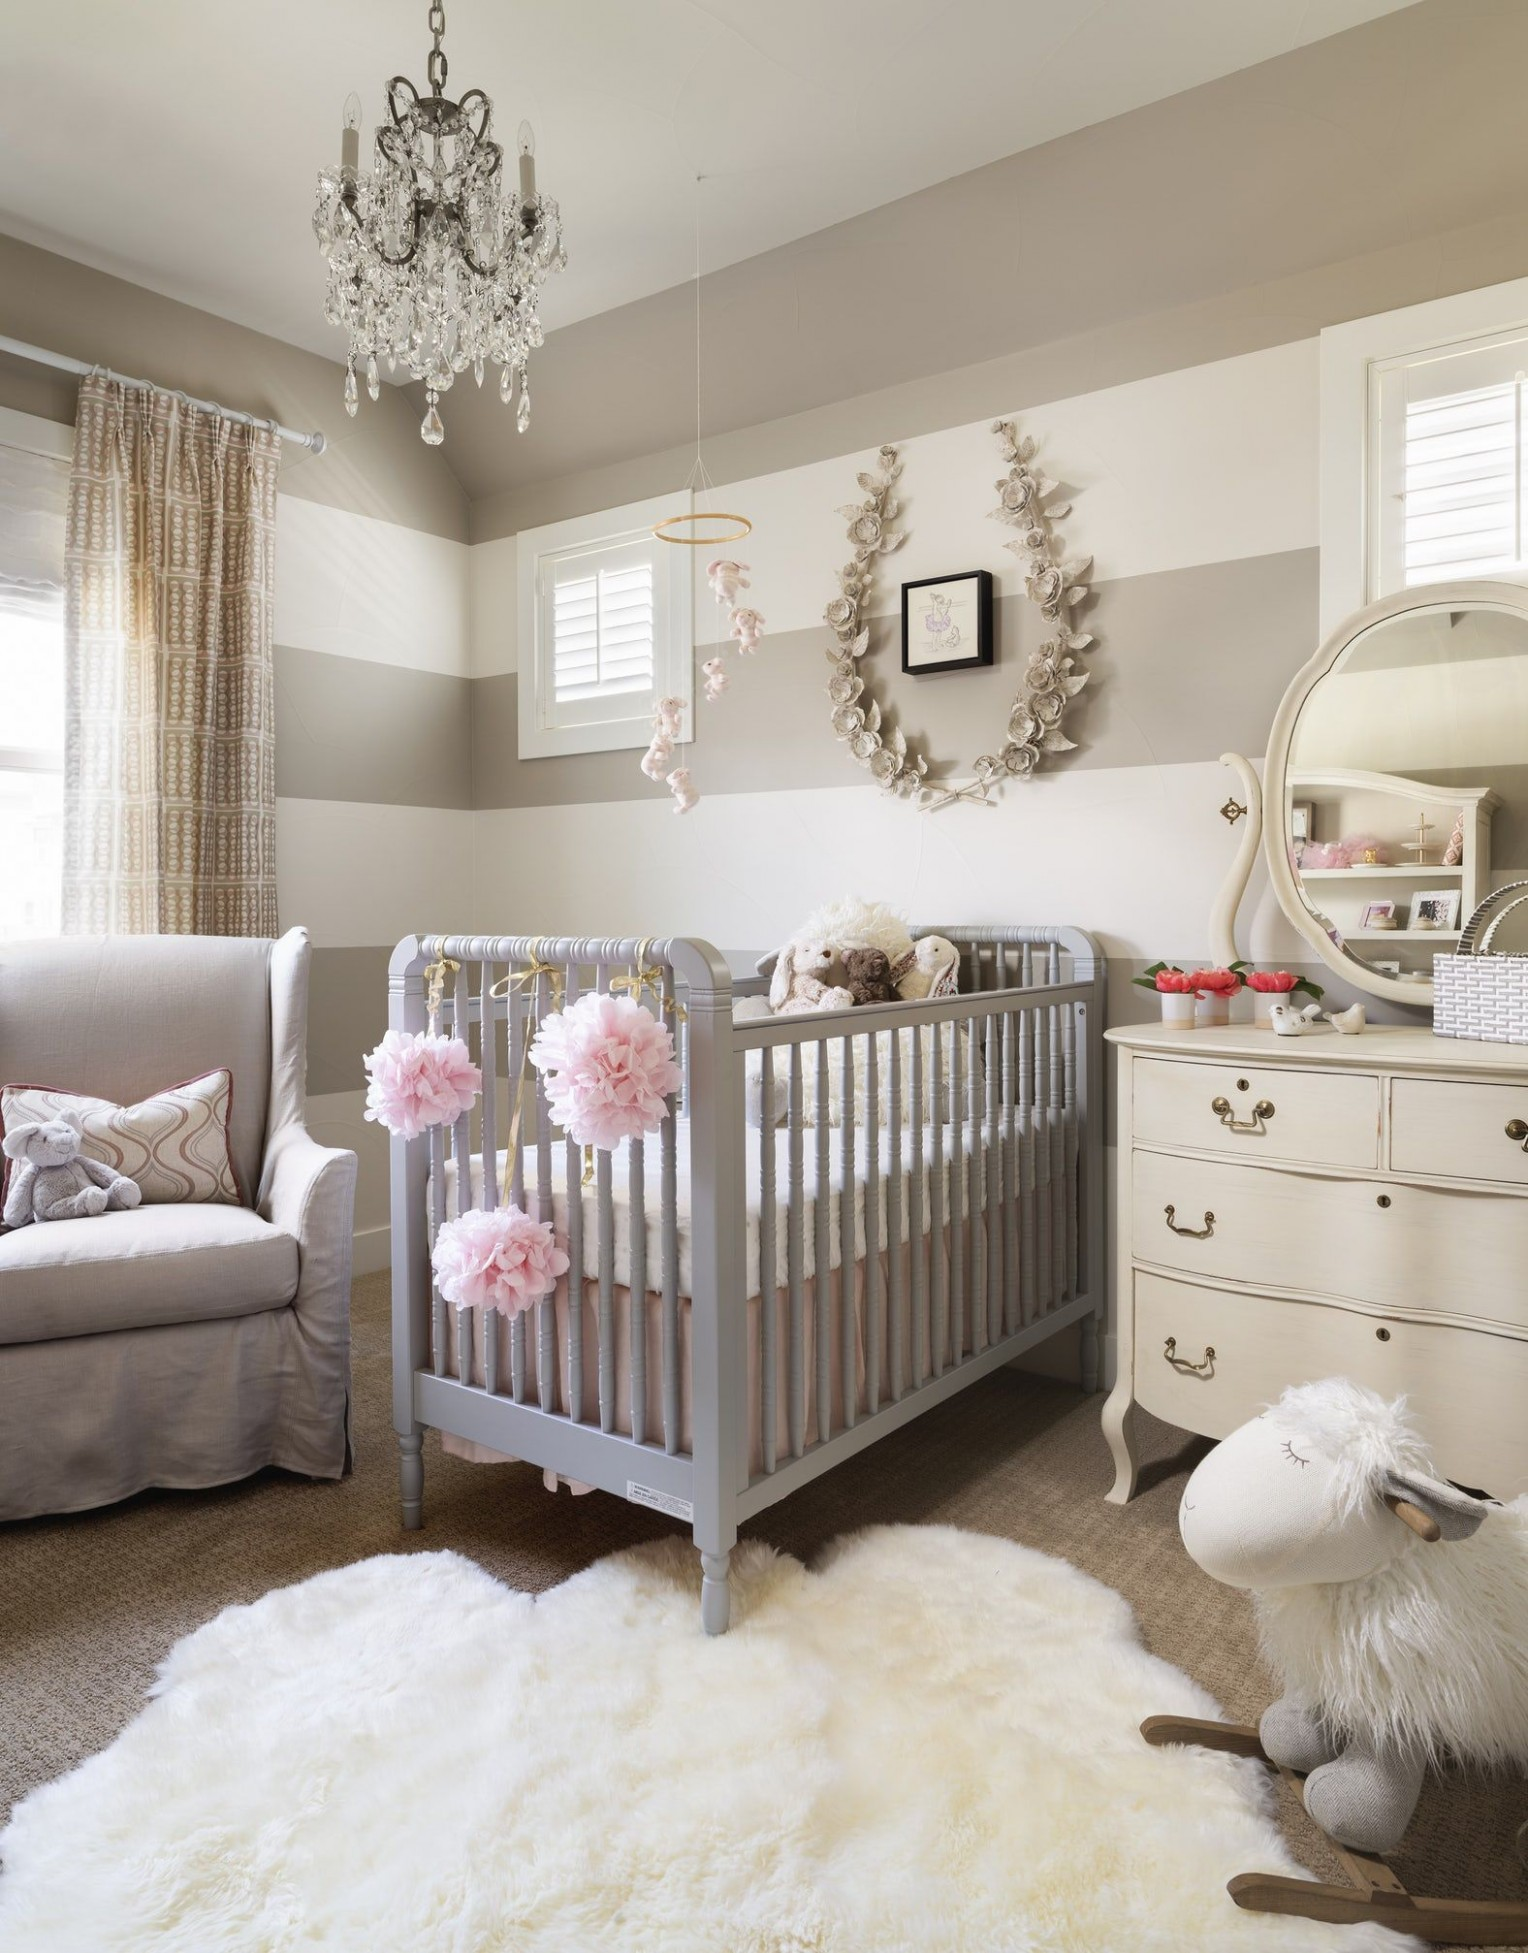 Chic Baby Room Design Ideas - How to Decorate a Nursery - Baby Room Nursery